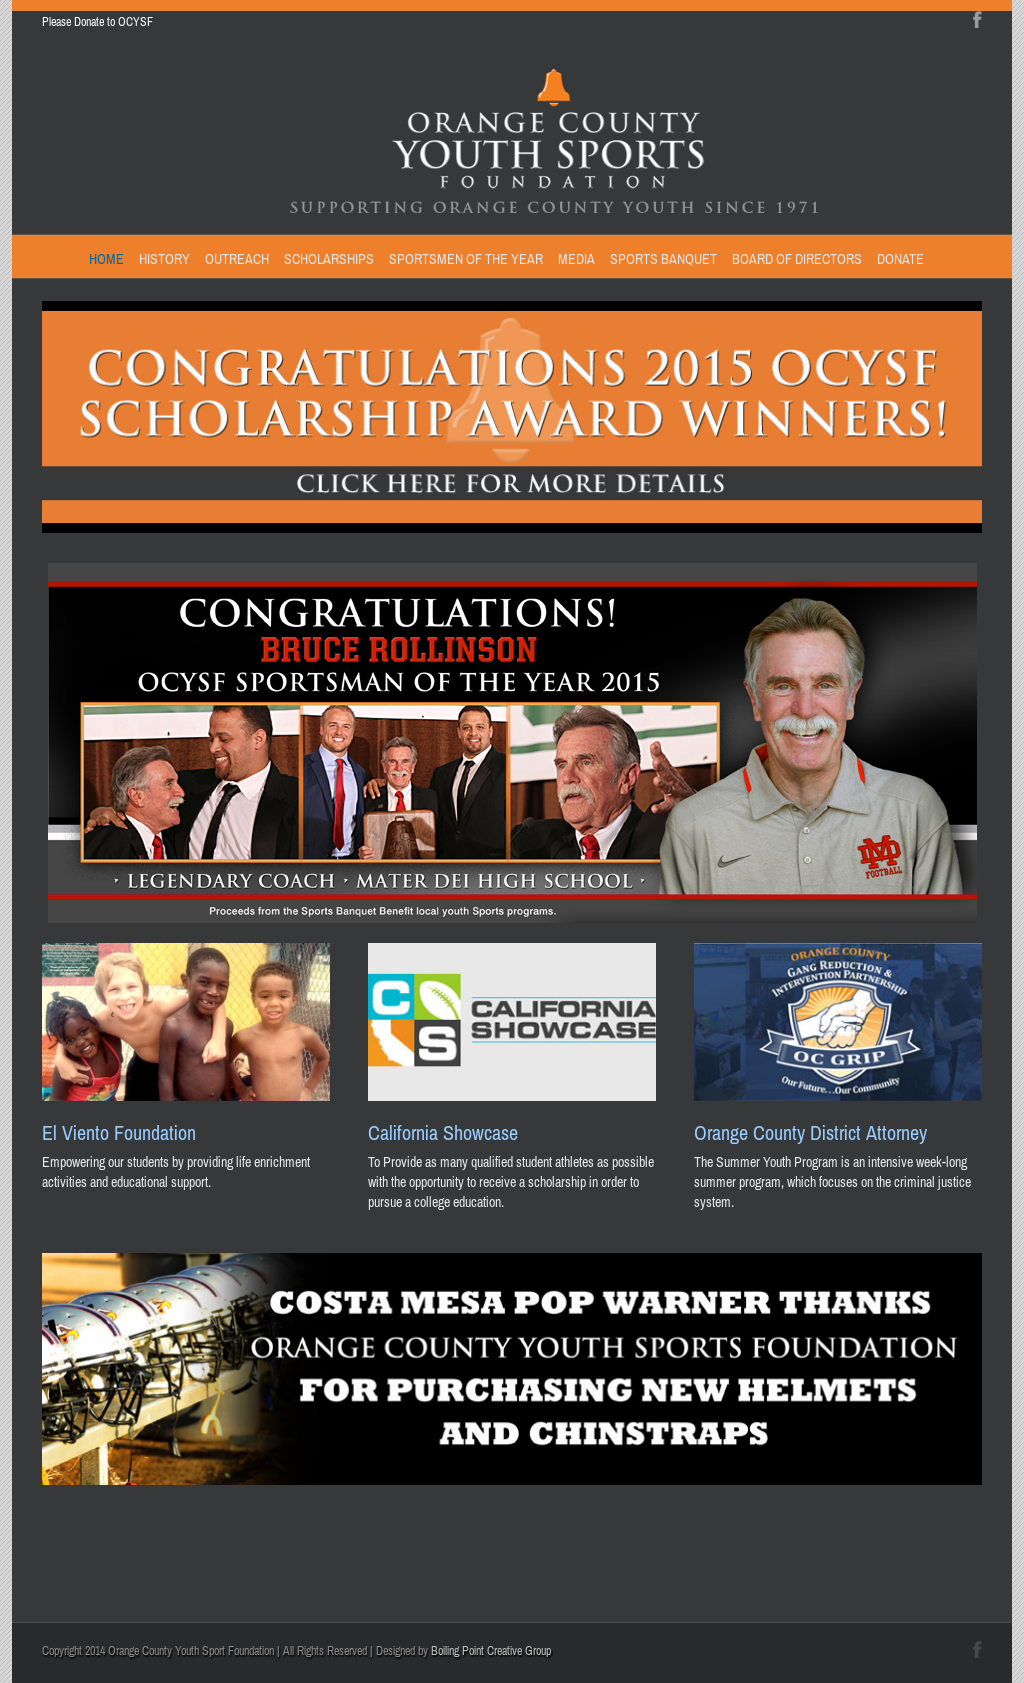 Orange County Youth Sport Foundation Competitors, Revenue and